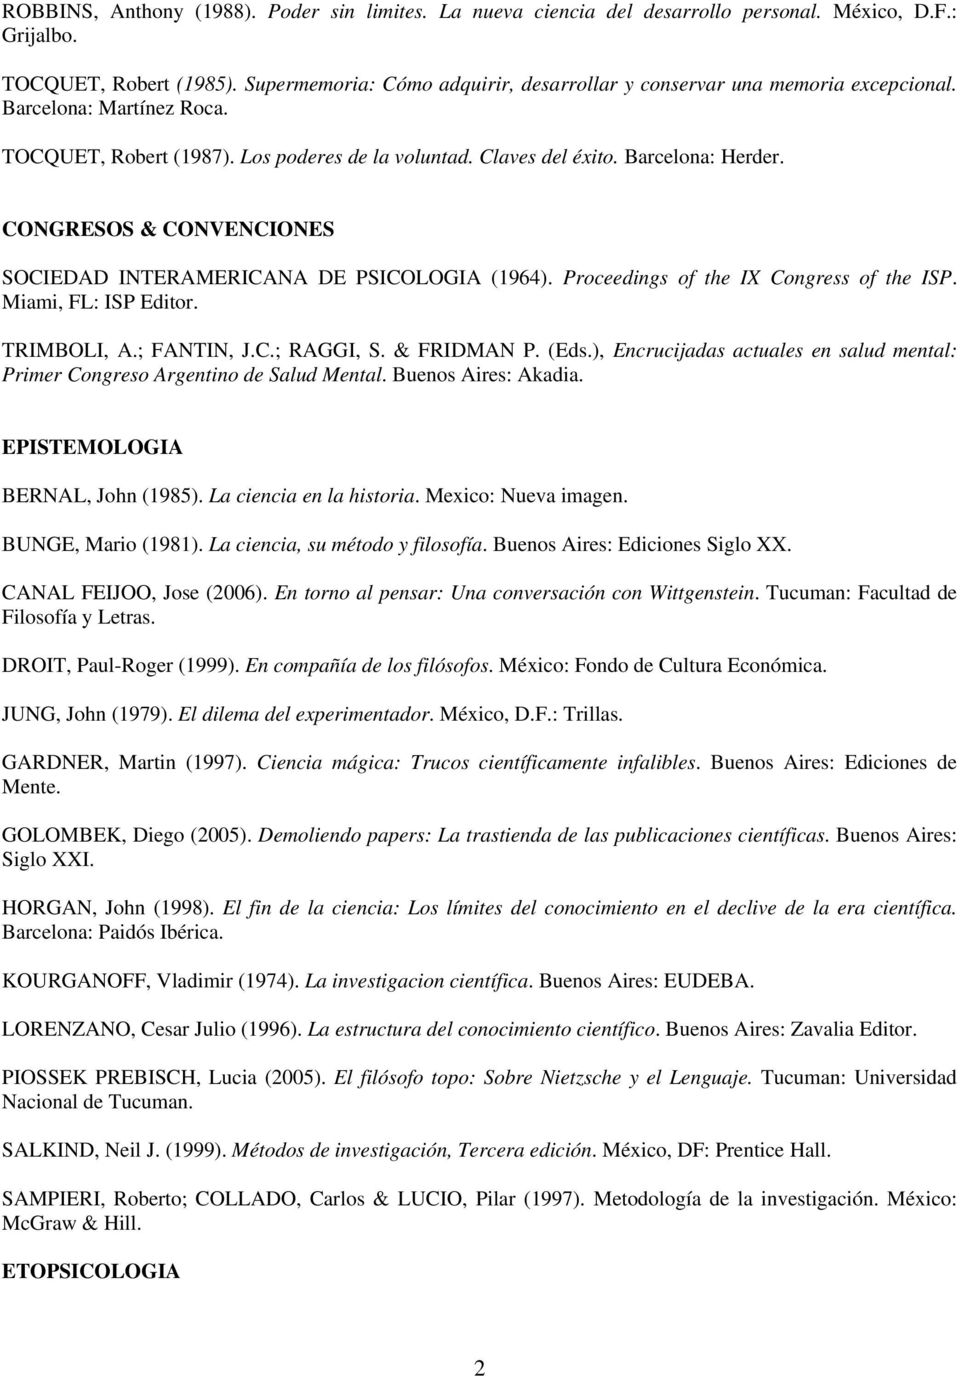 CONGRESOS & CONVENCIONES SOCIEDAD INTERAMERICANA DE PSICOLOGIA (1964). Proceedings of the IX Congress of the ISP. Miami, FL: ISP Editor. TRIMBOLI, A.; FANTIN, J.C.; RAGGI, S. & FRIDMAN P. (Eds.